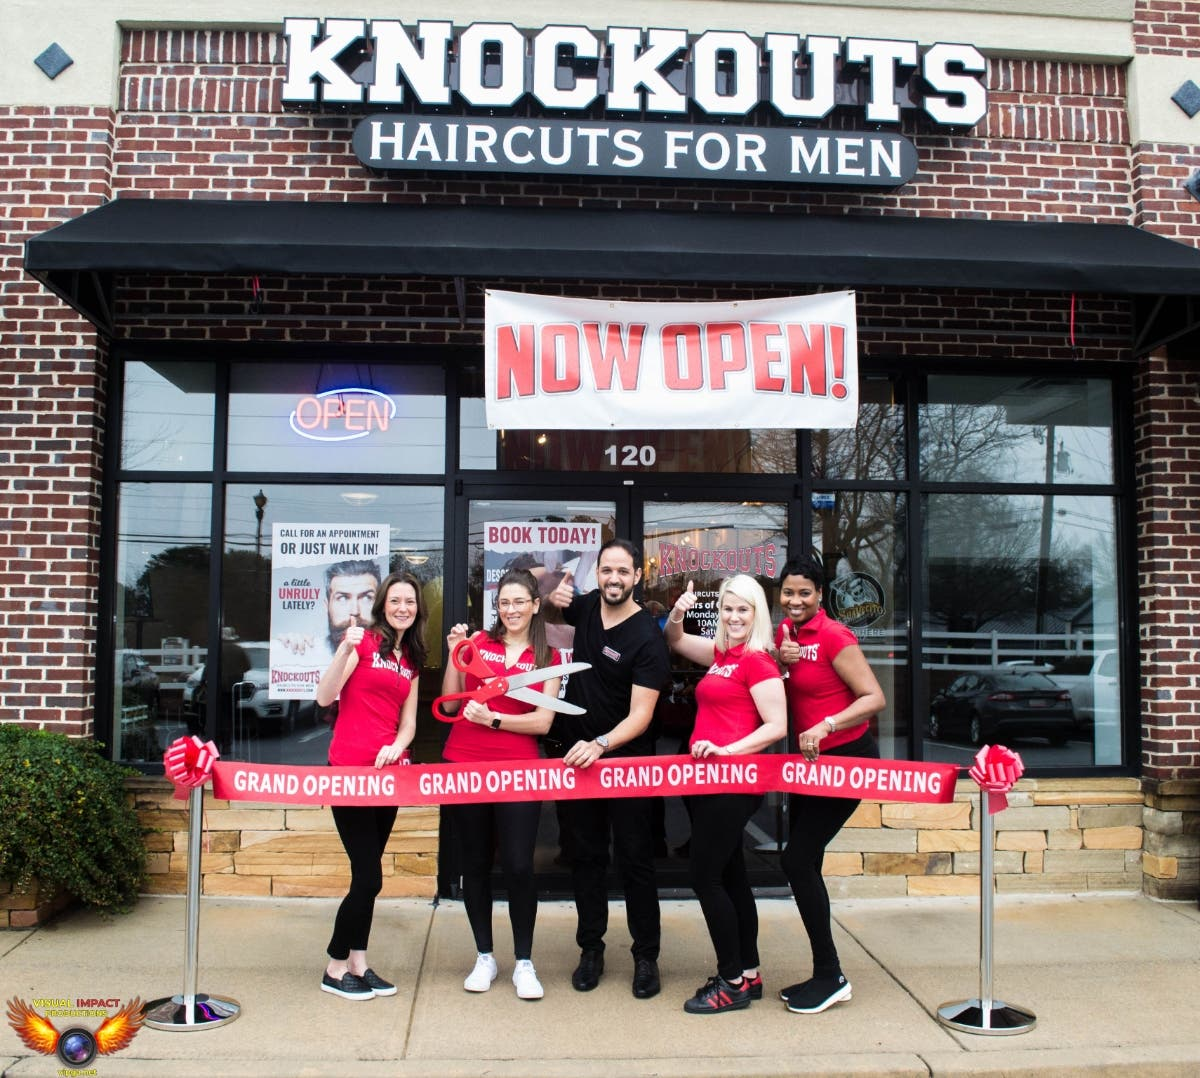 Jan 17 Grand Opening Knockouts Haircuts For Men Roswell Ga Patch